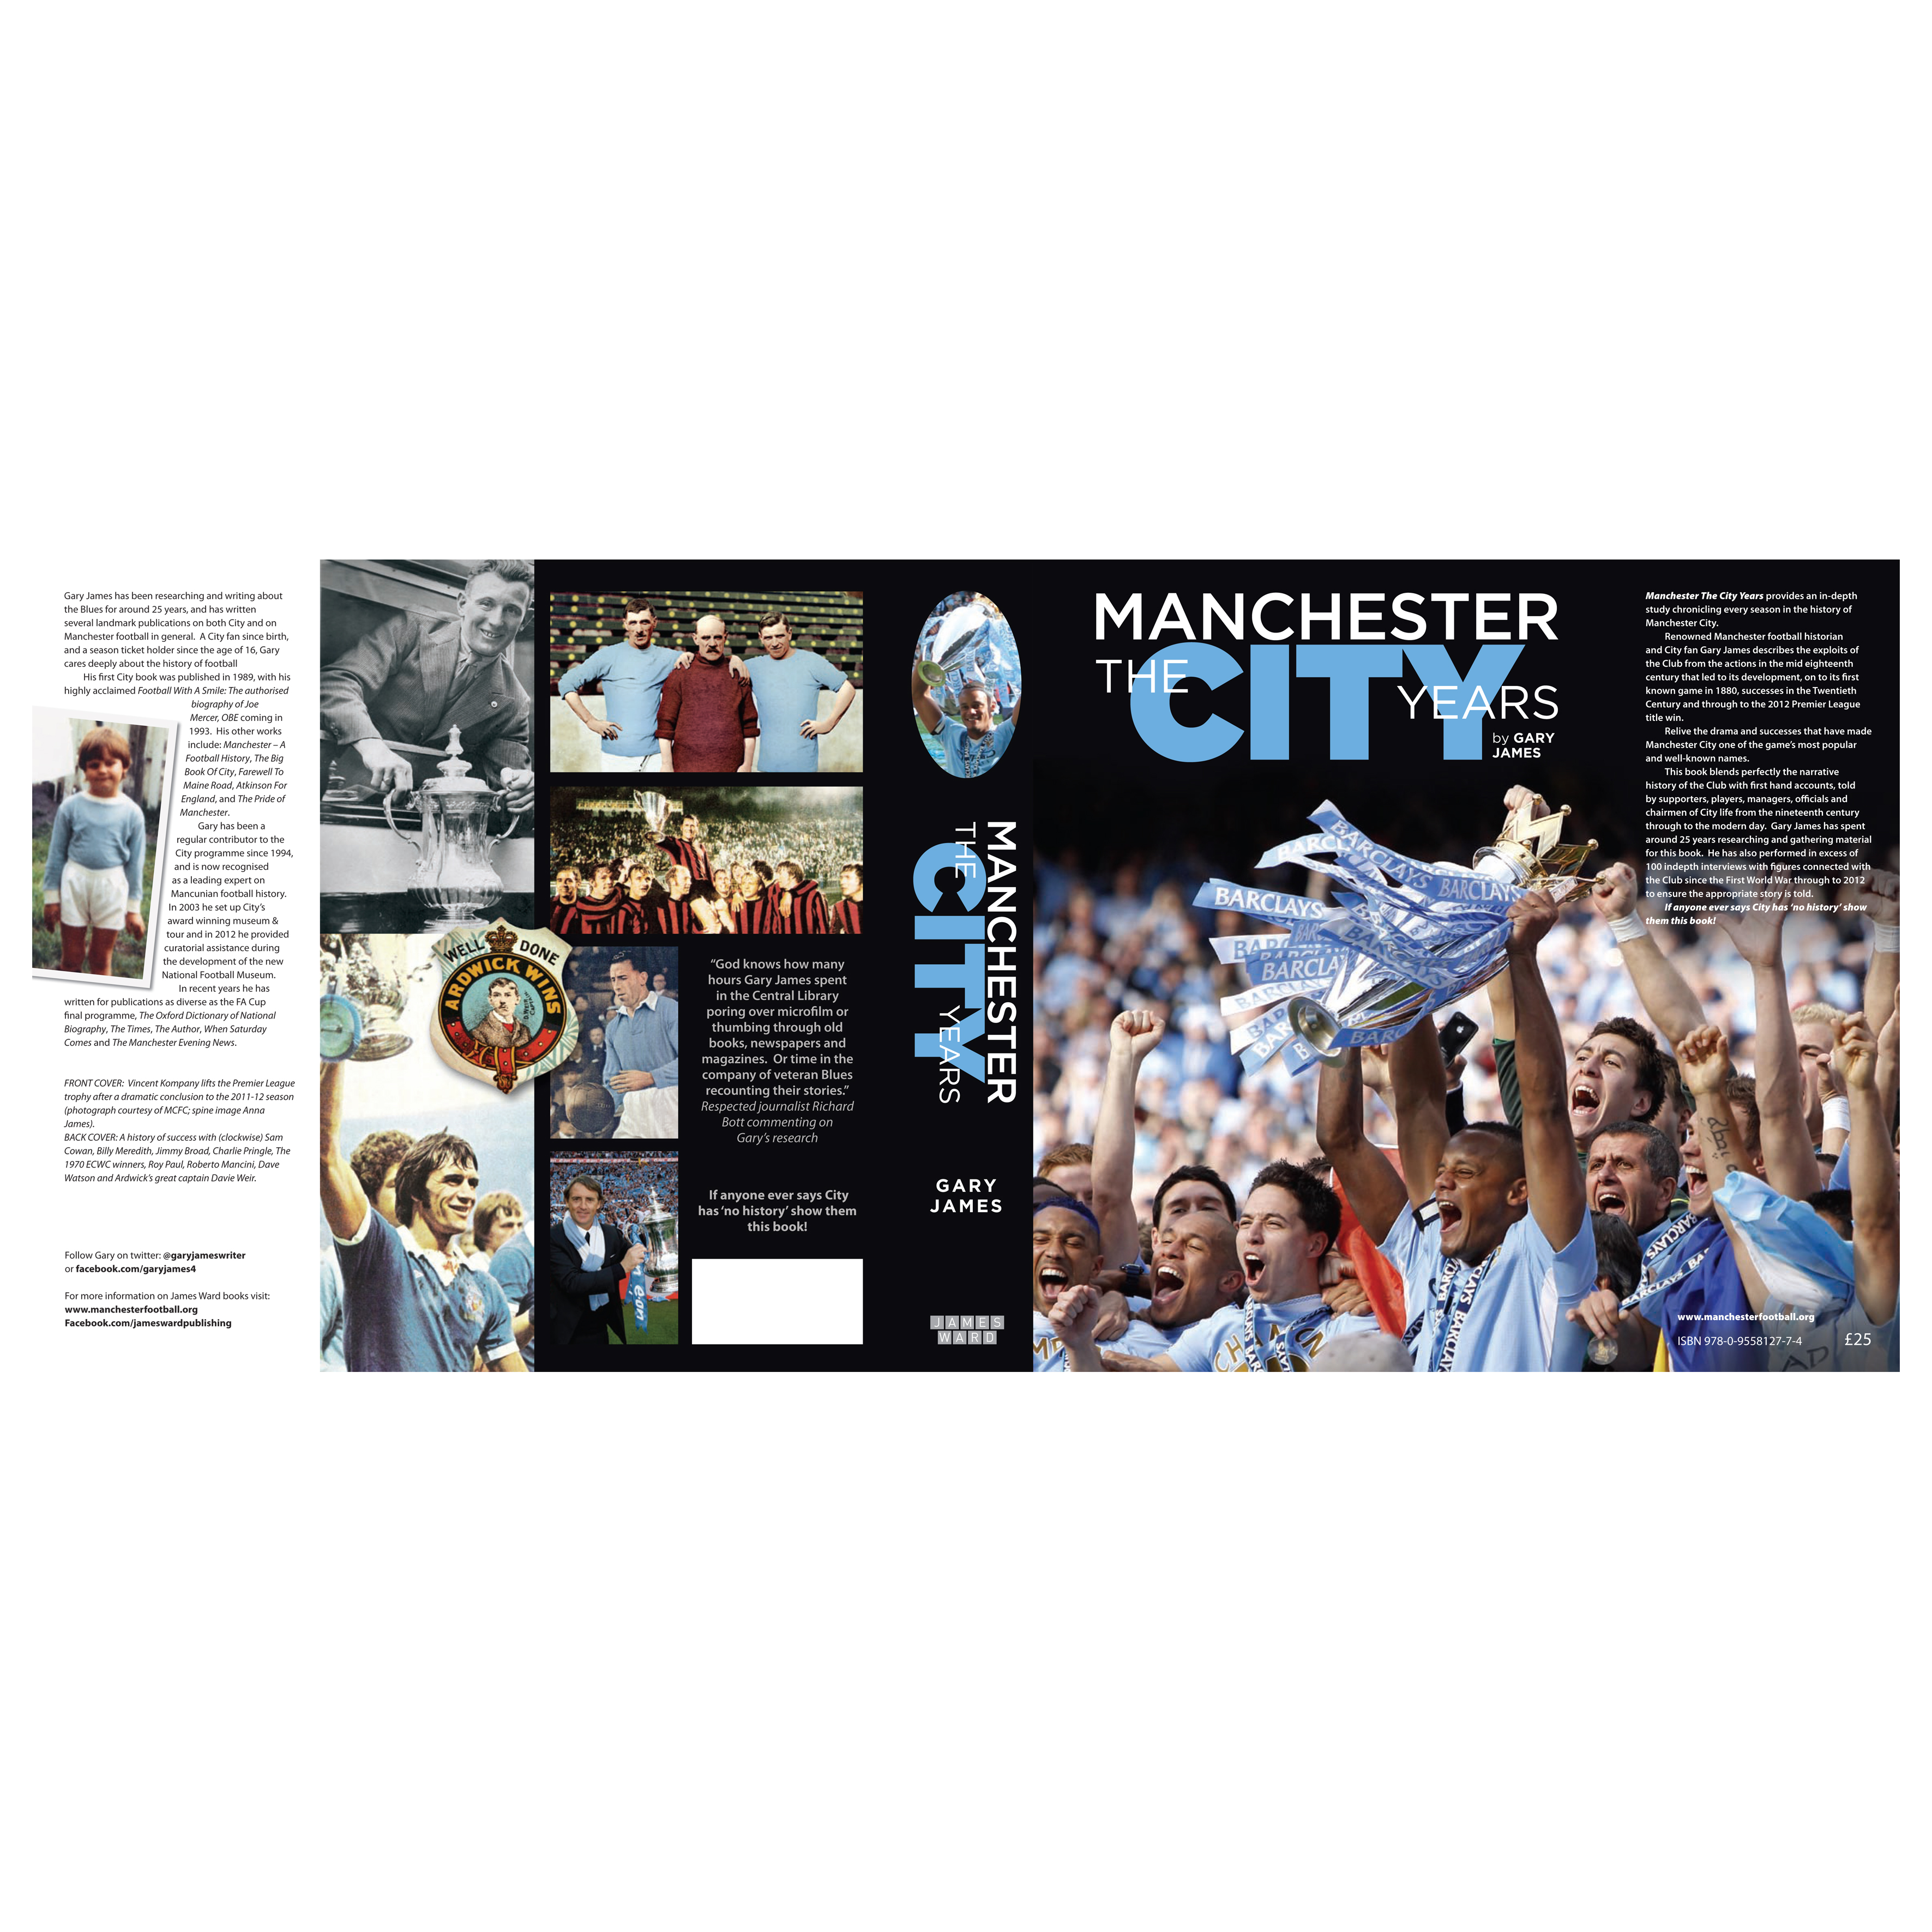 Manchester City Manchester The City Years